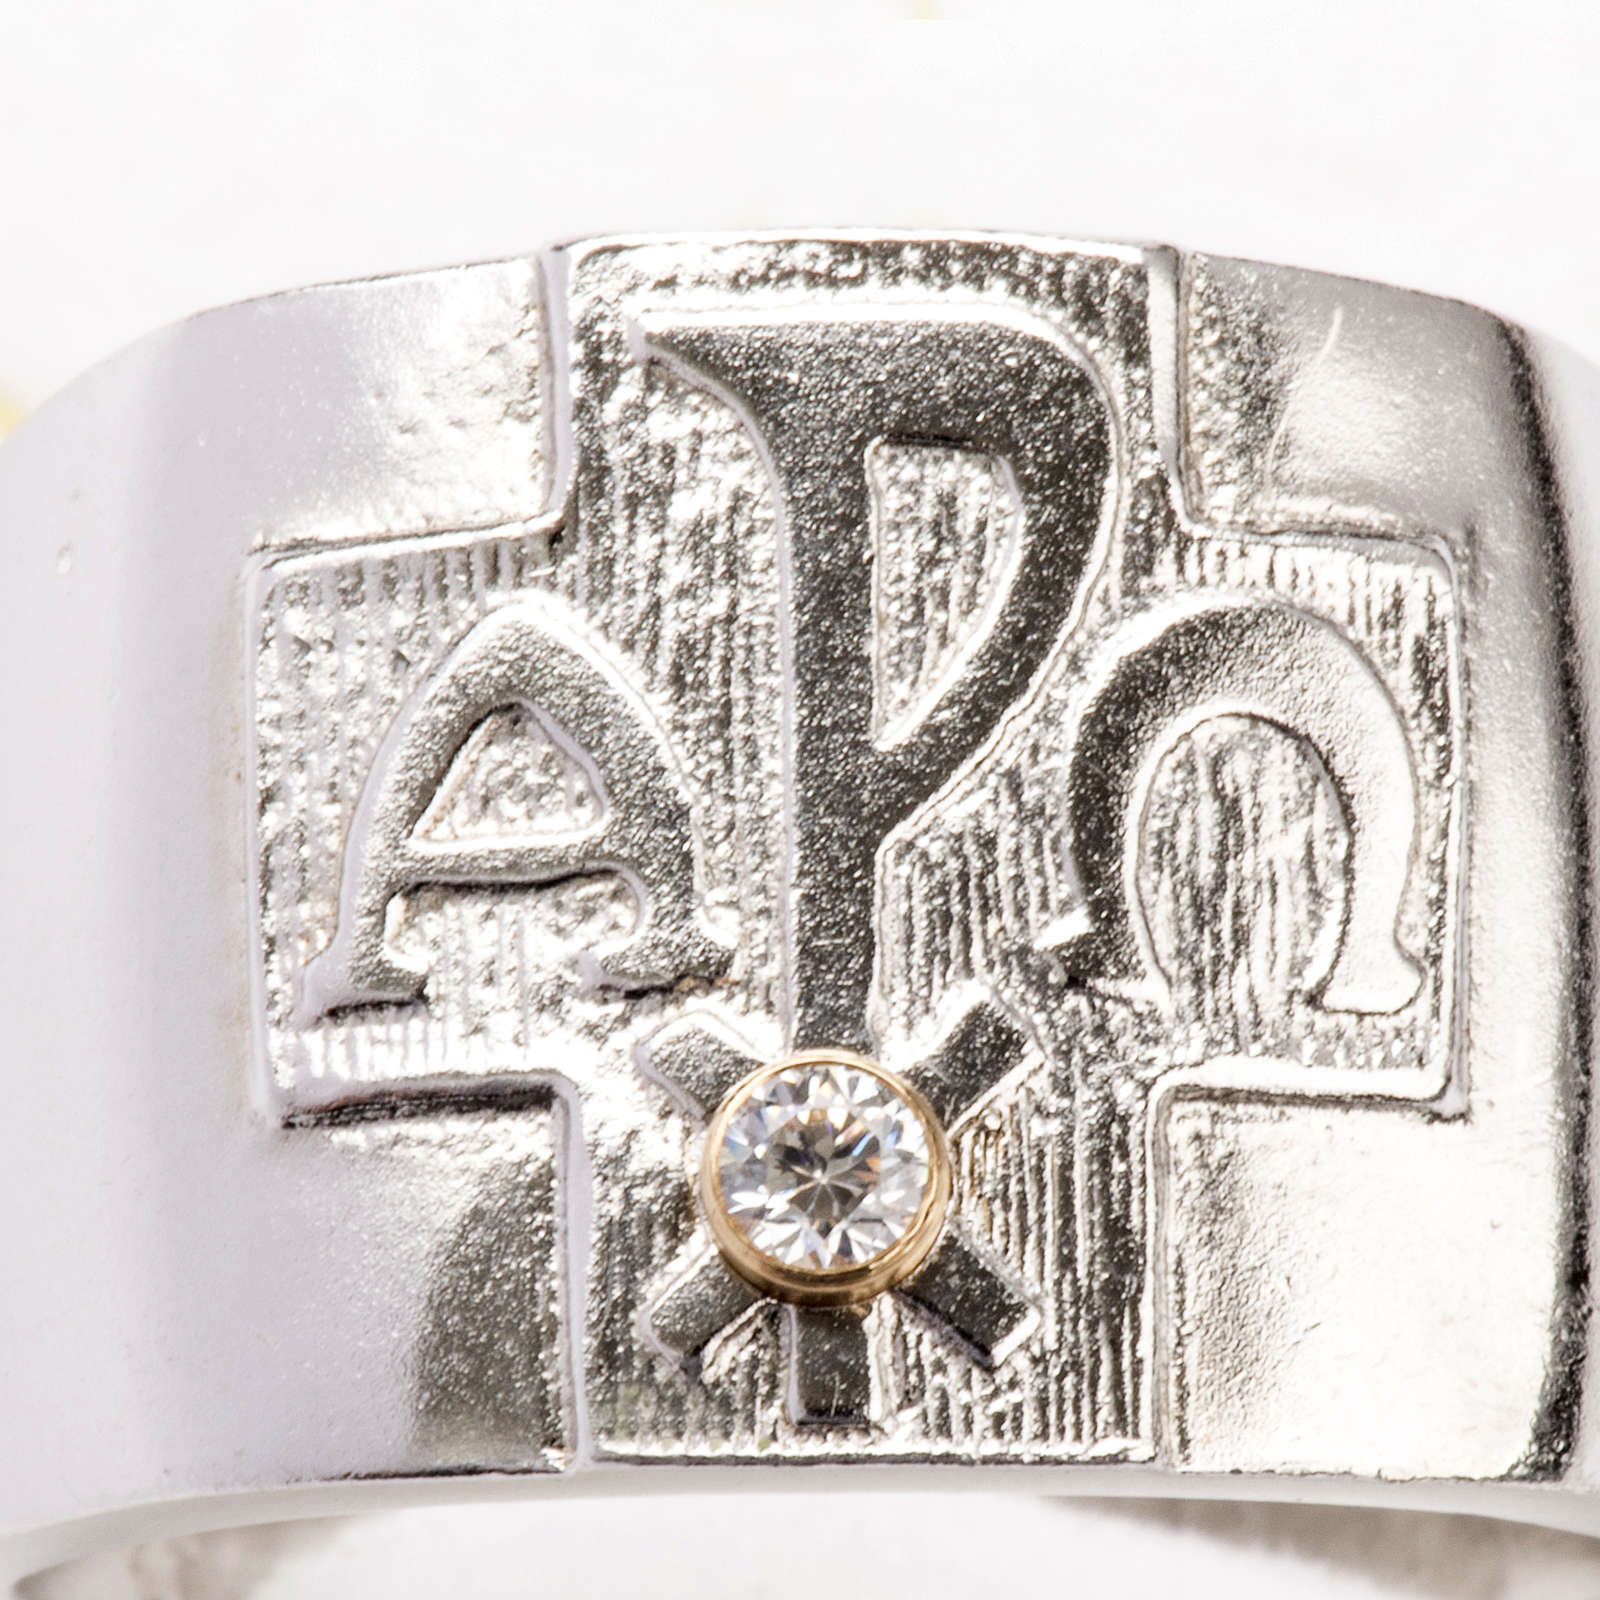 Bishop Ring - Chi-Rho, Alpha and Omega and Zircon stone 3